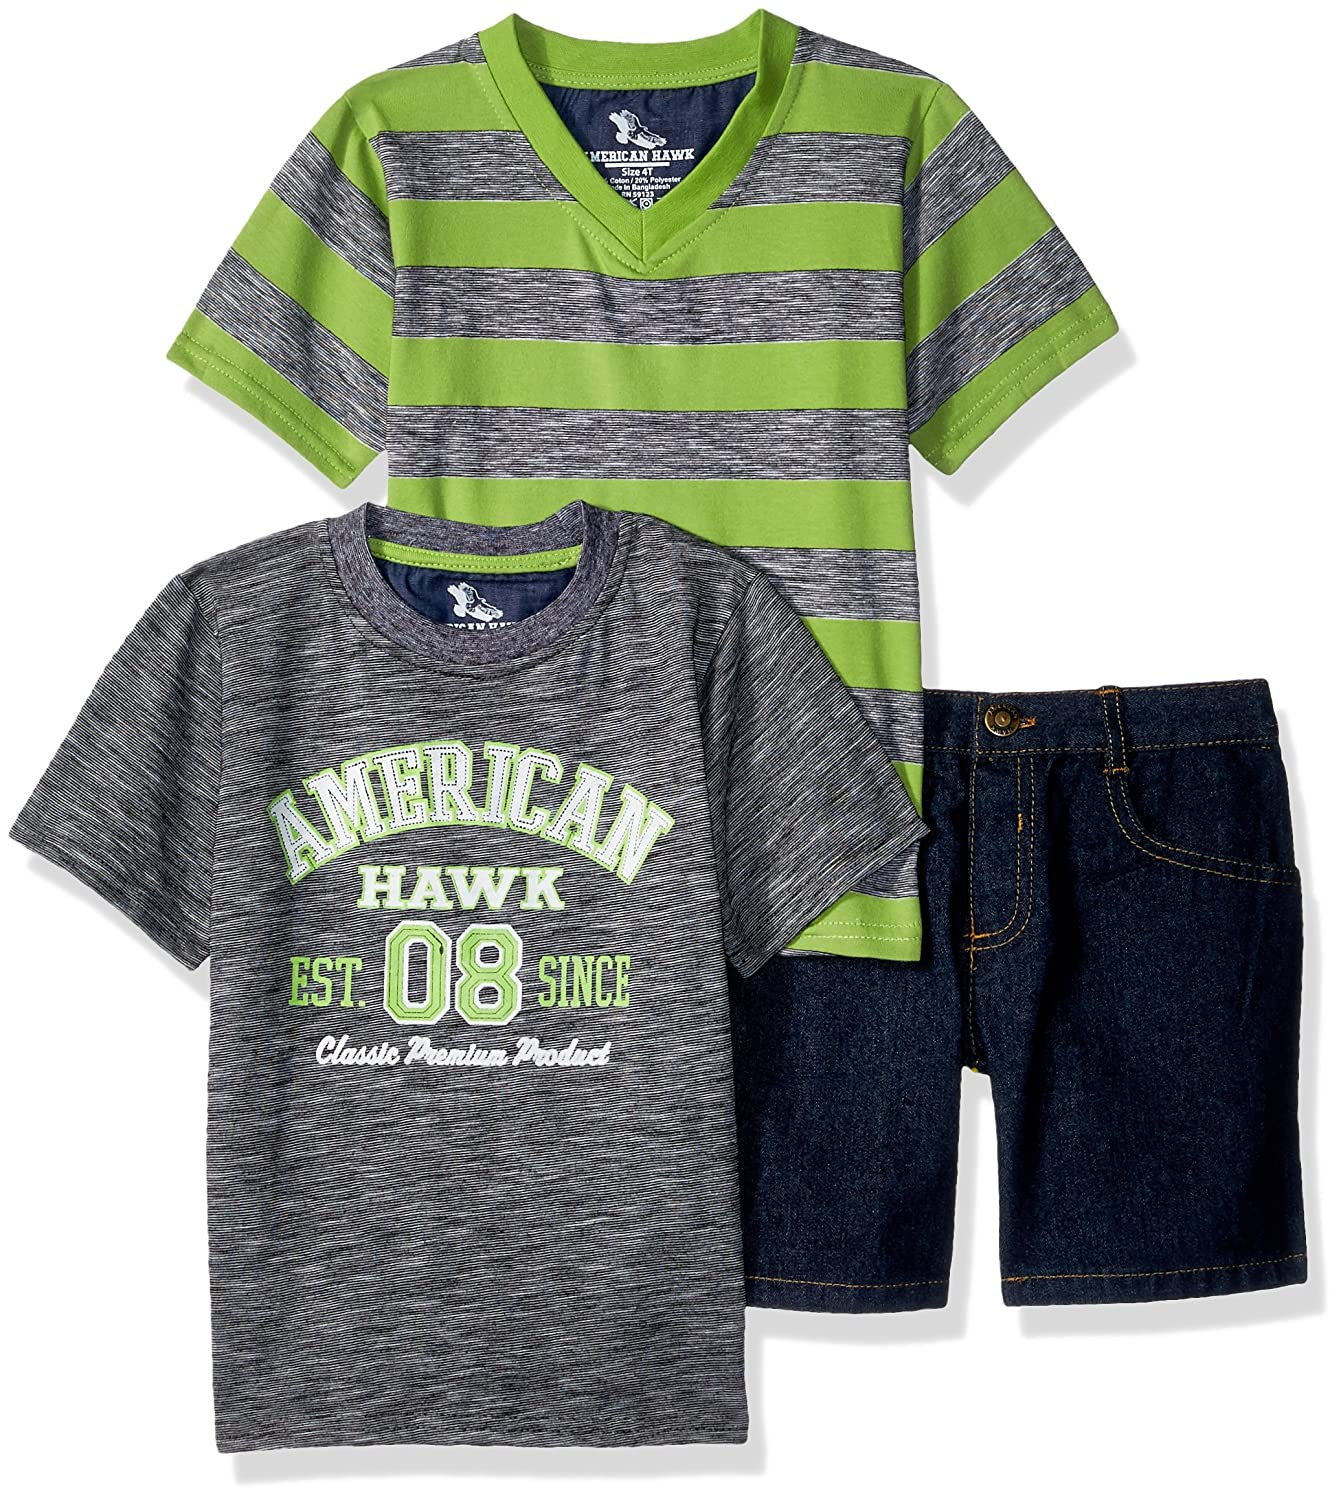 American Hawk Boys 3 Piece Graphic and Denim Short SS52 V-Neck T-Shirt